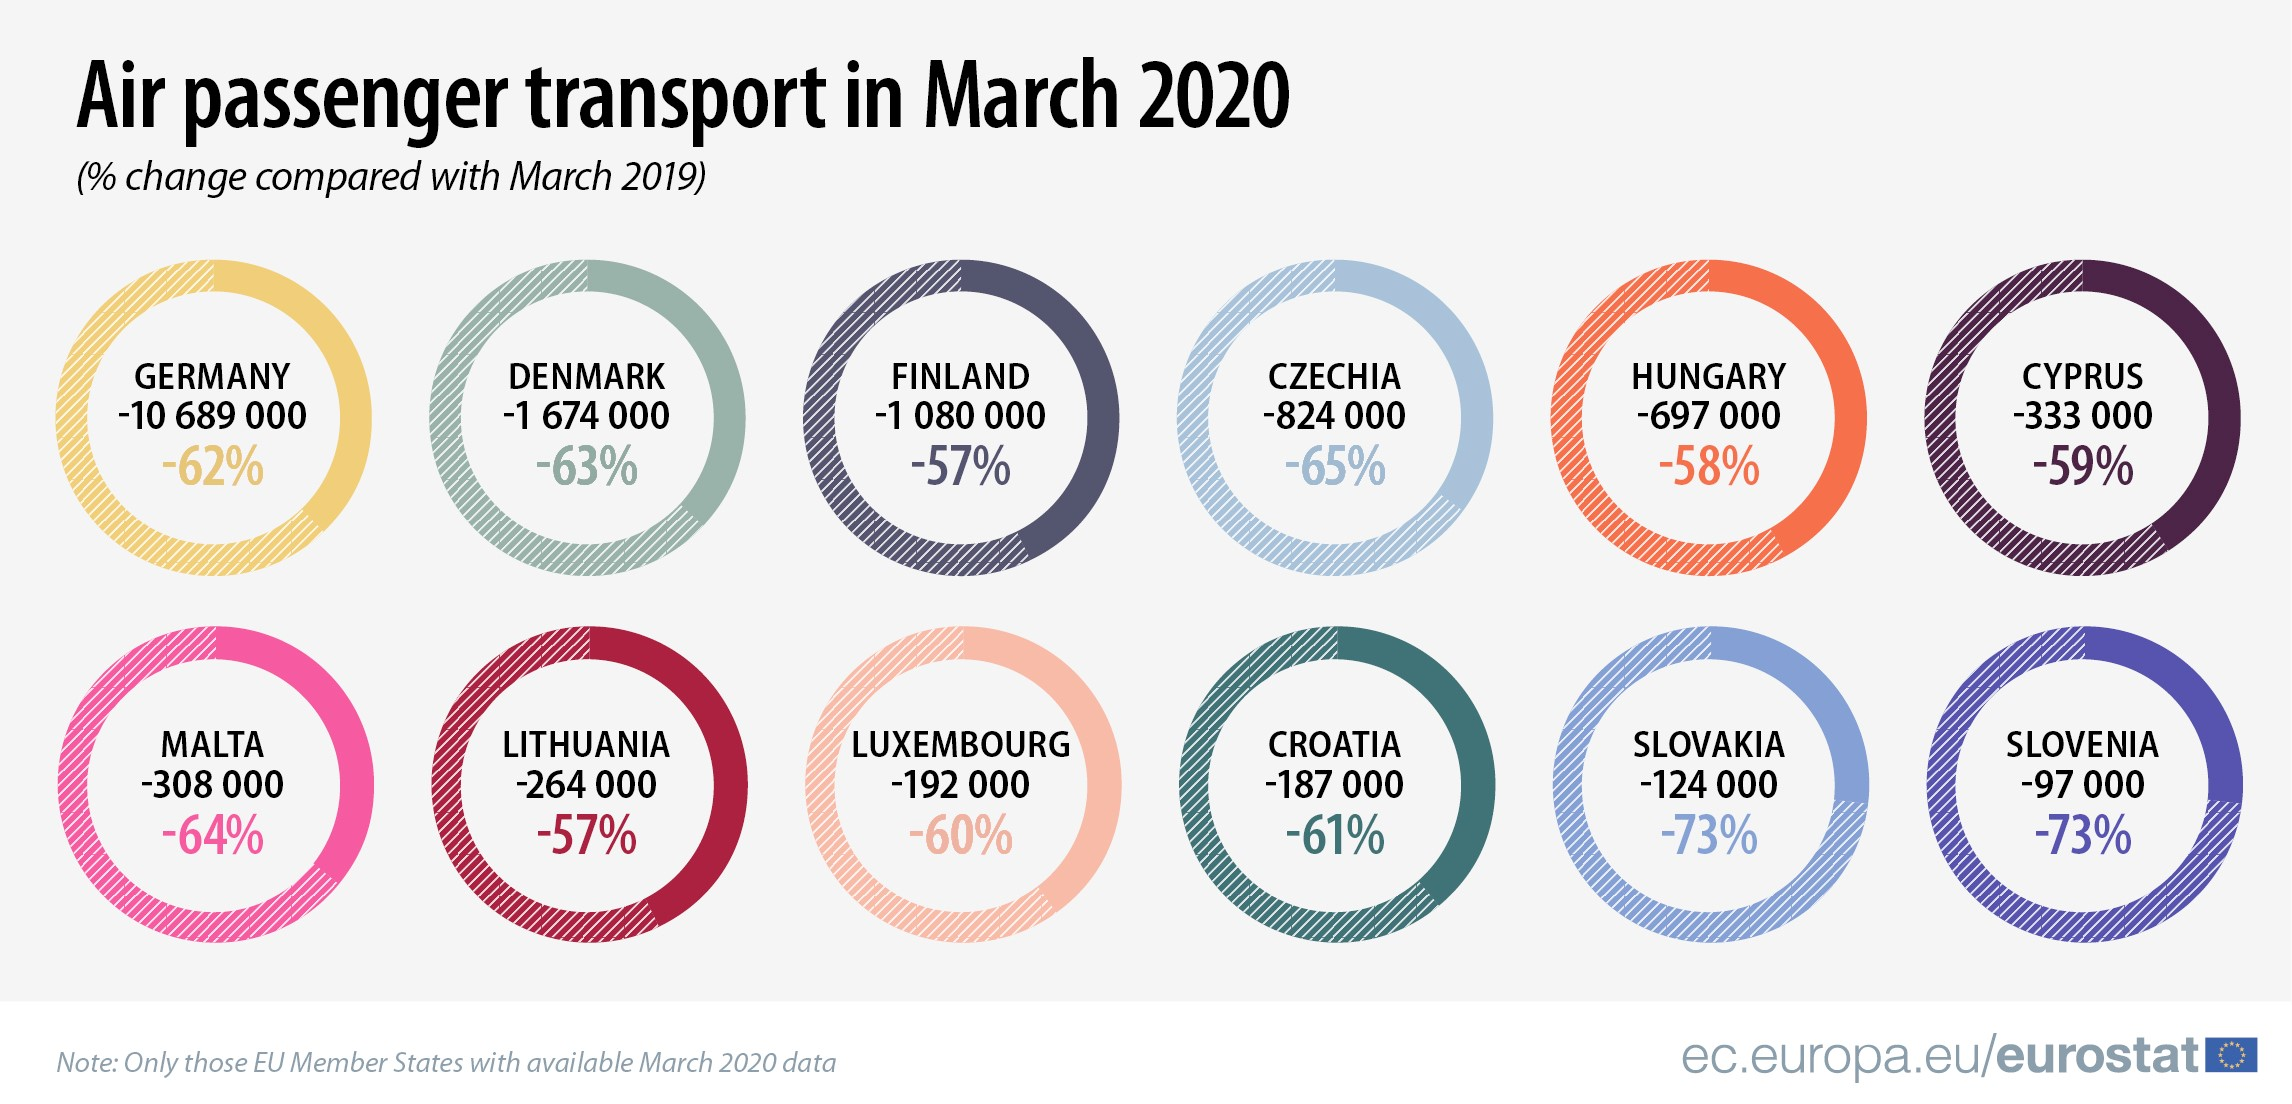 Air passenger transport in March 2020, compared with March 2019